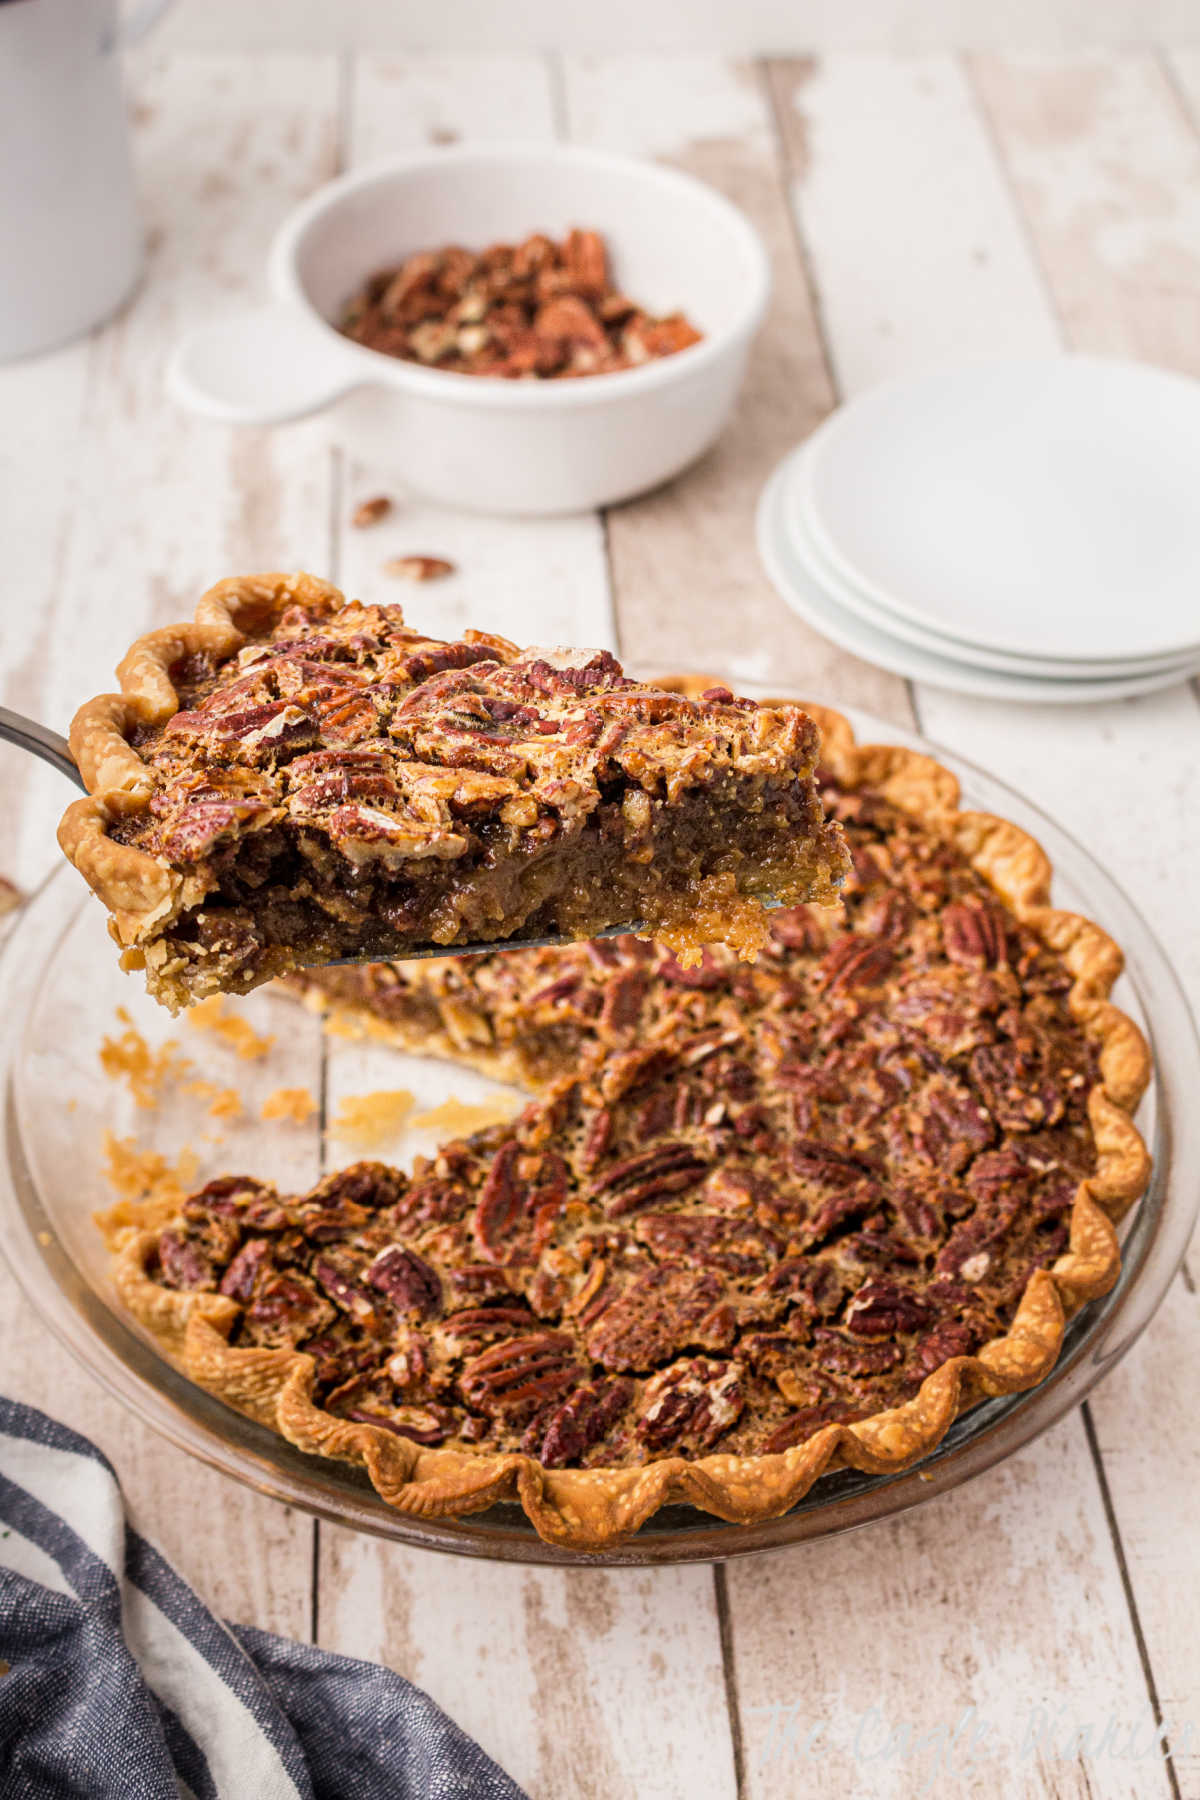 a dish with pecan pie with a slice being taken out